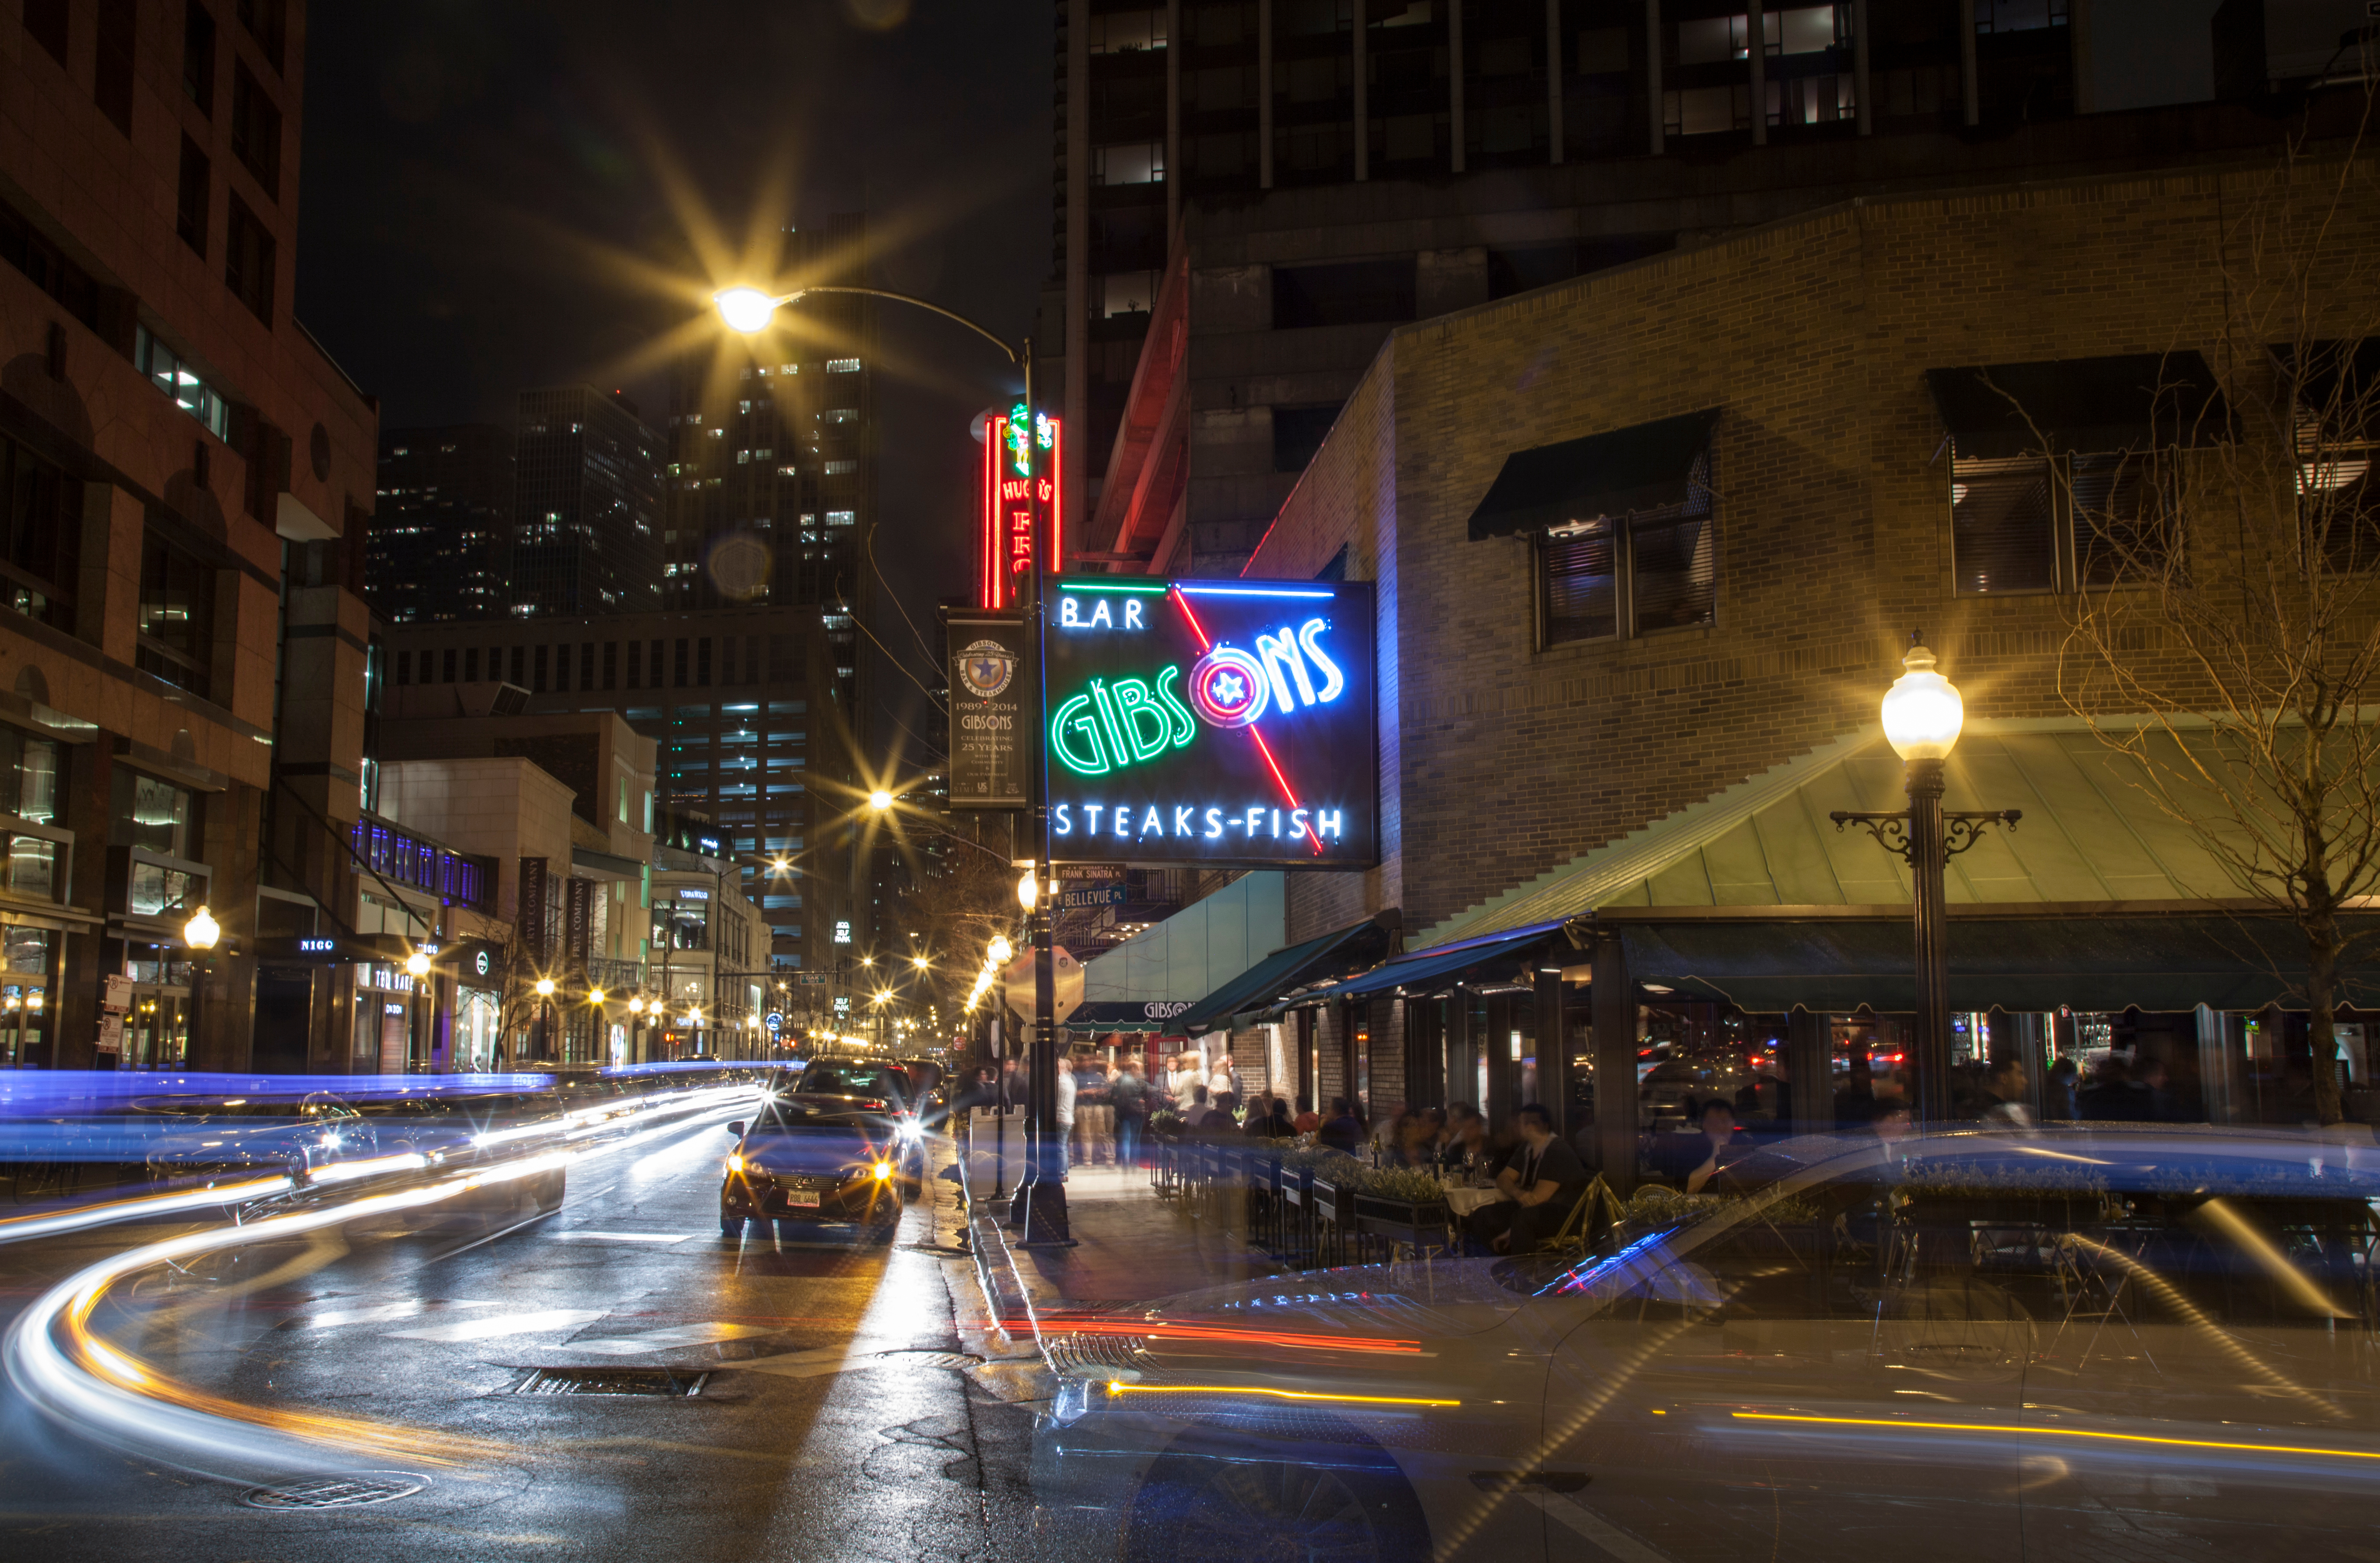 A neon restaurant sign with motion photography showing blurred cars at night.